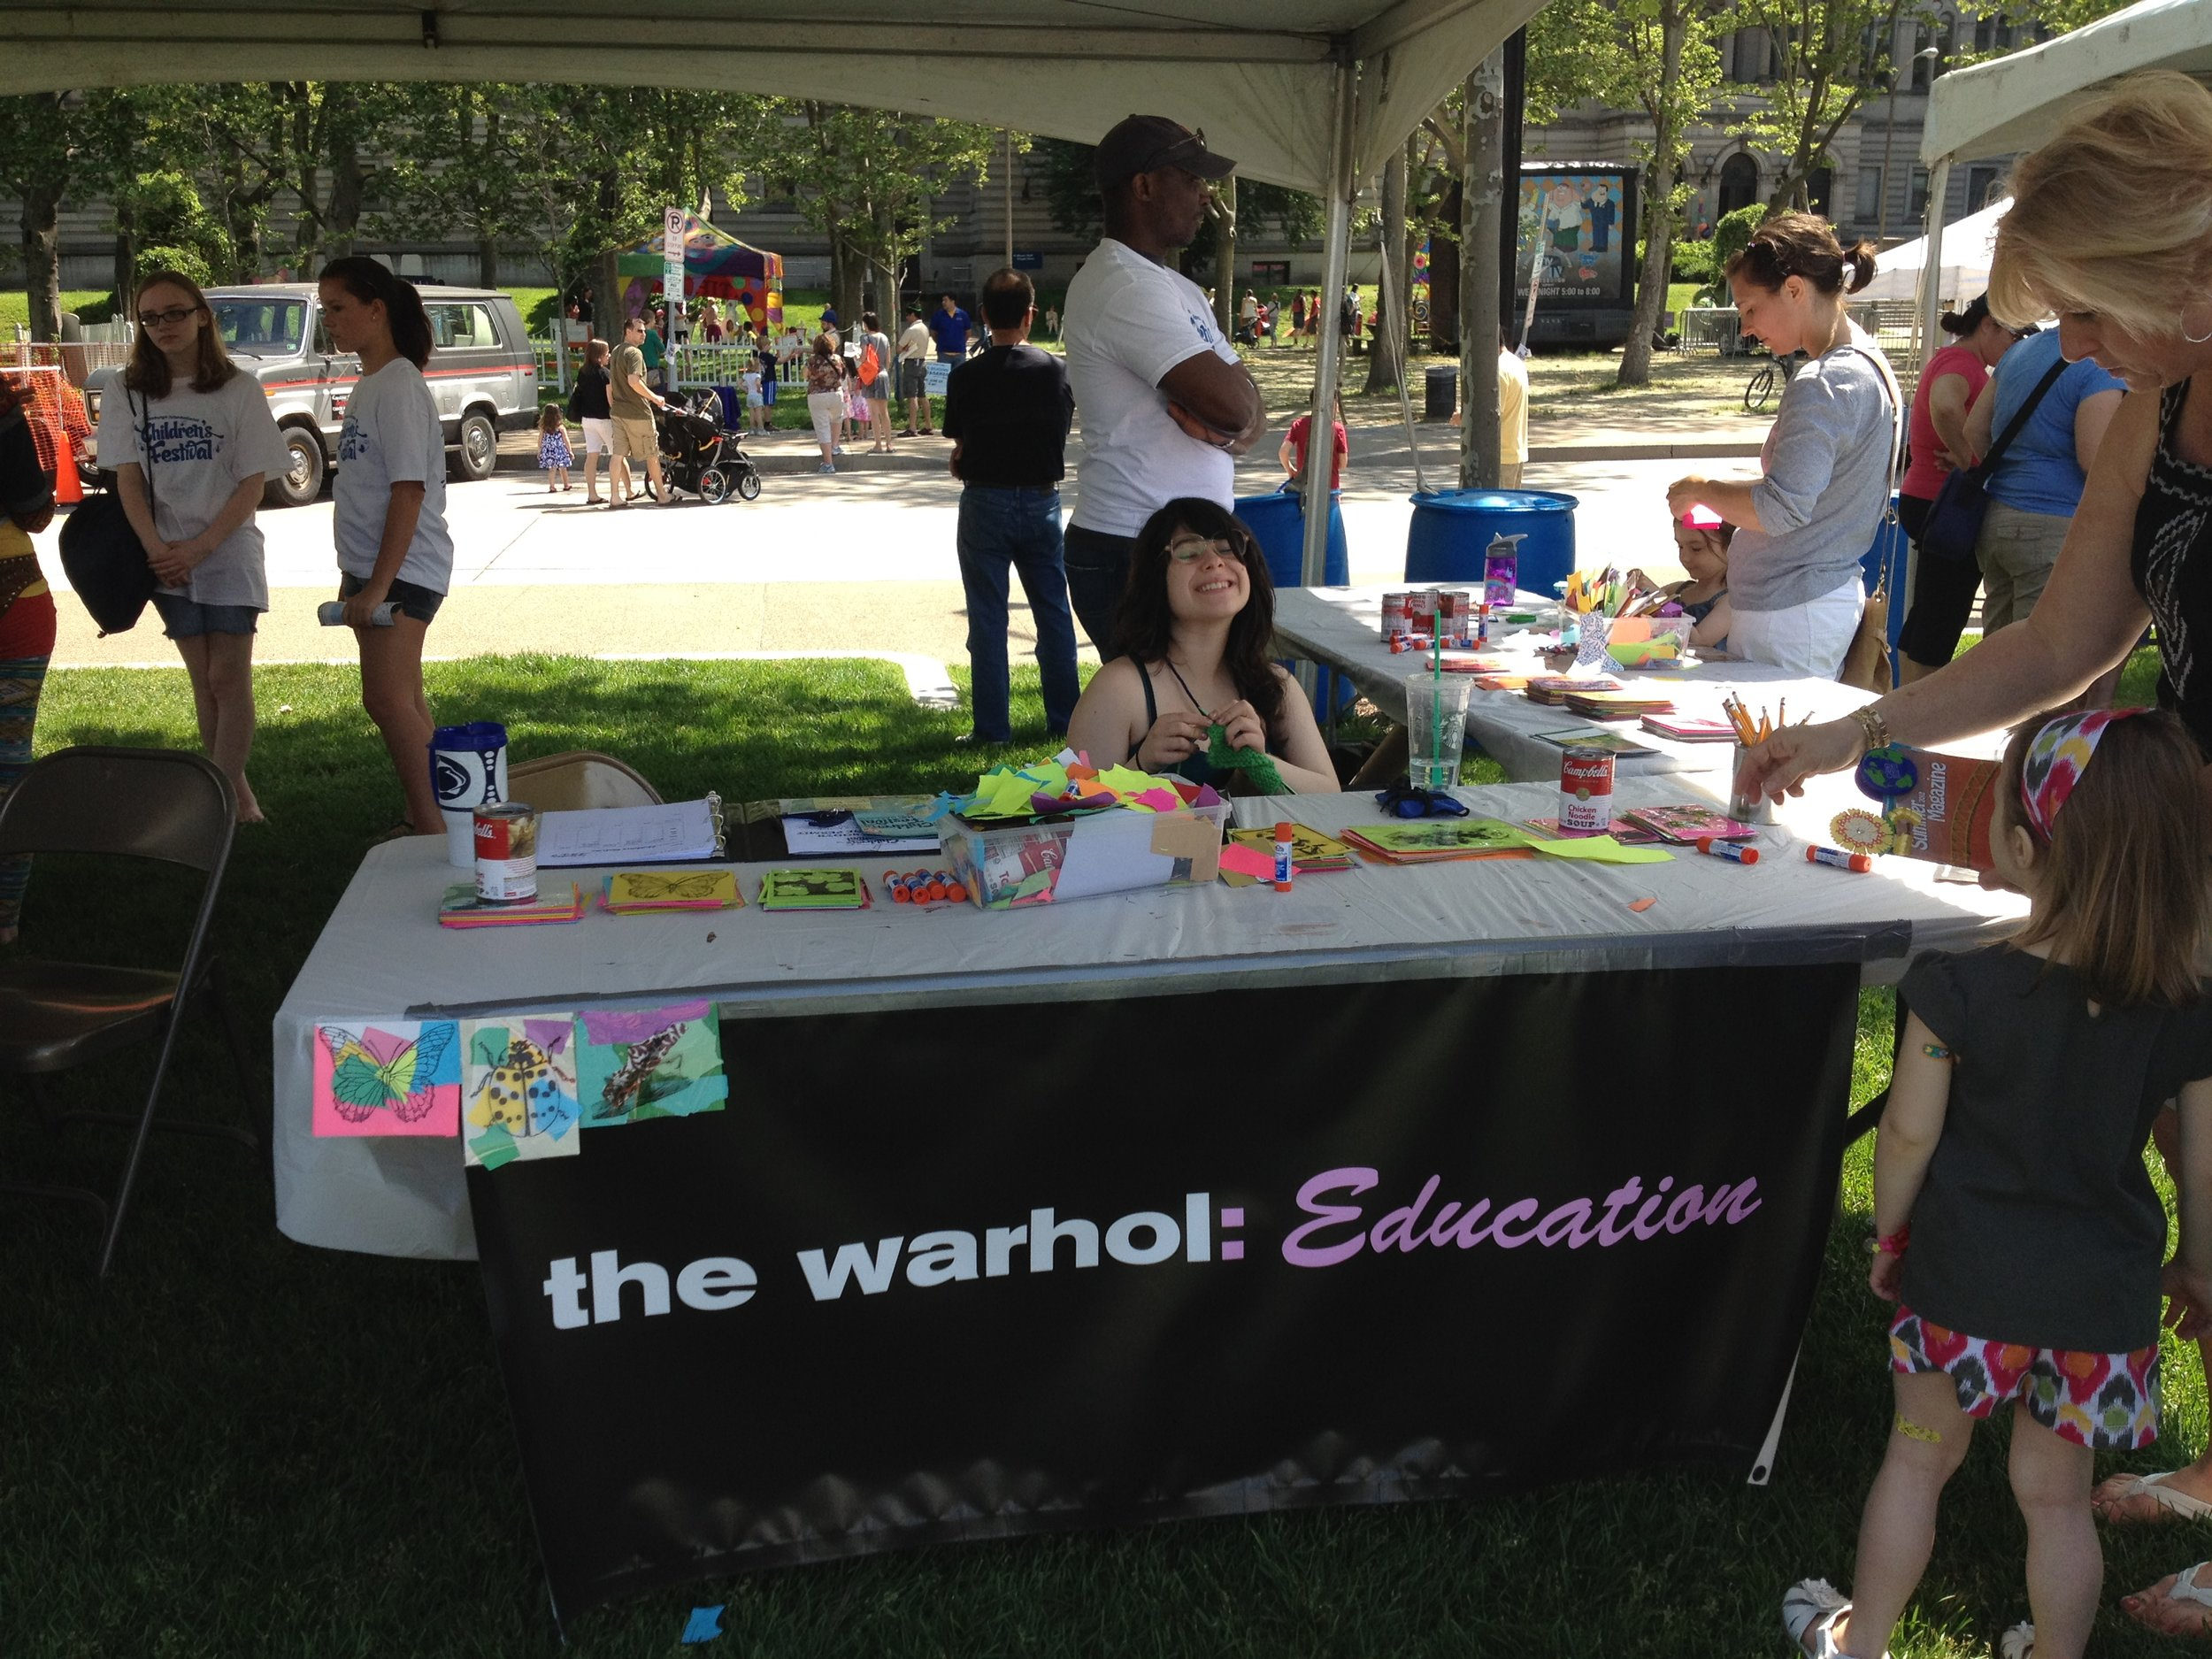 Warhol_outreach outside table.jpg